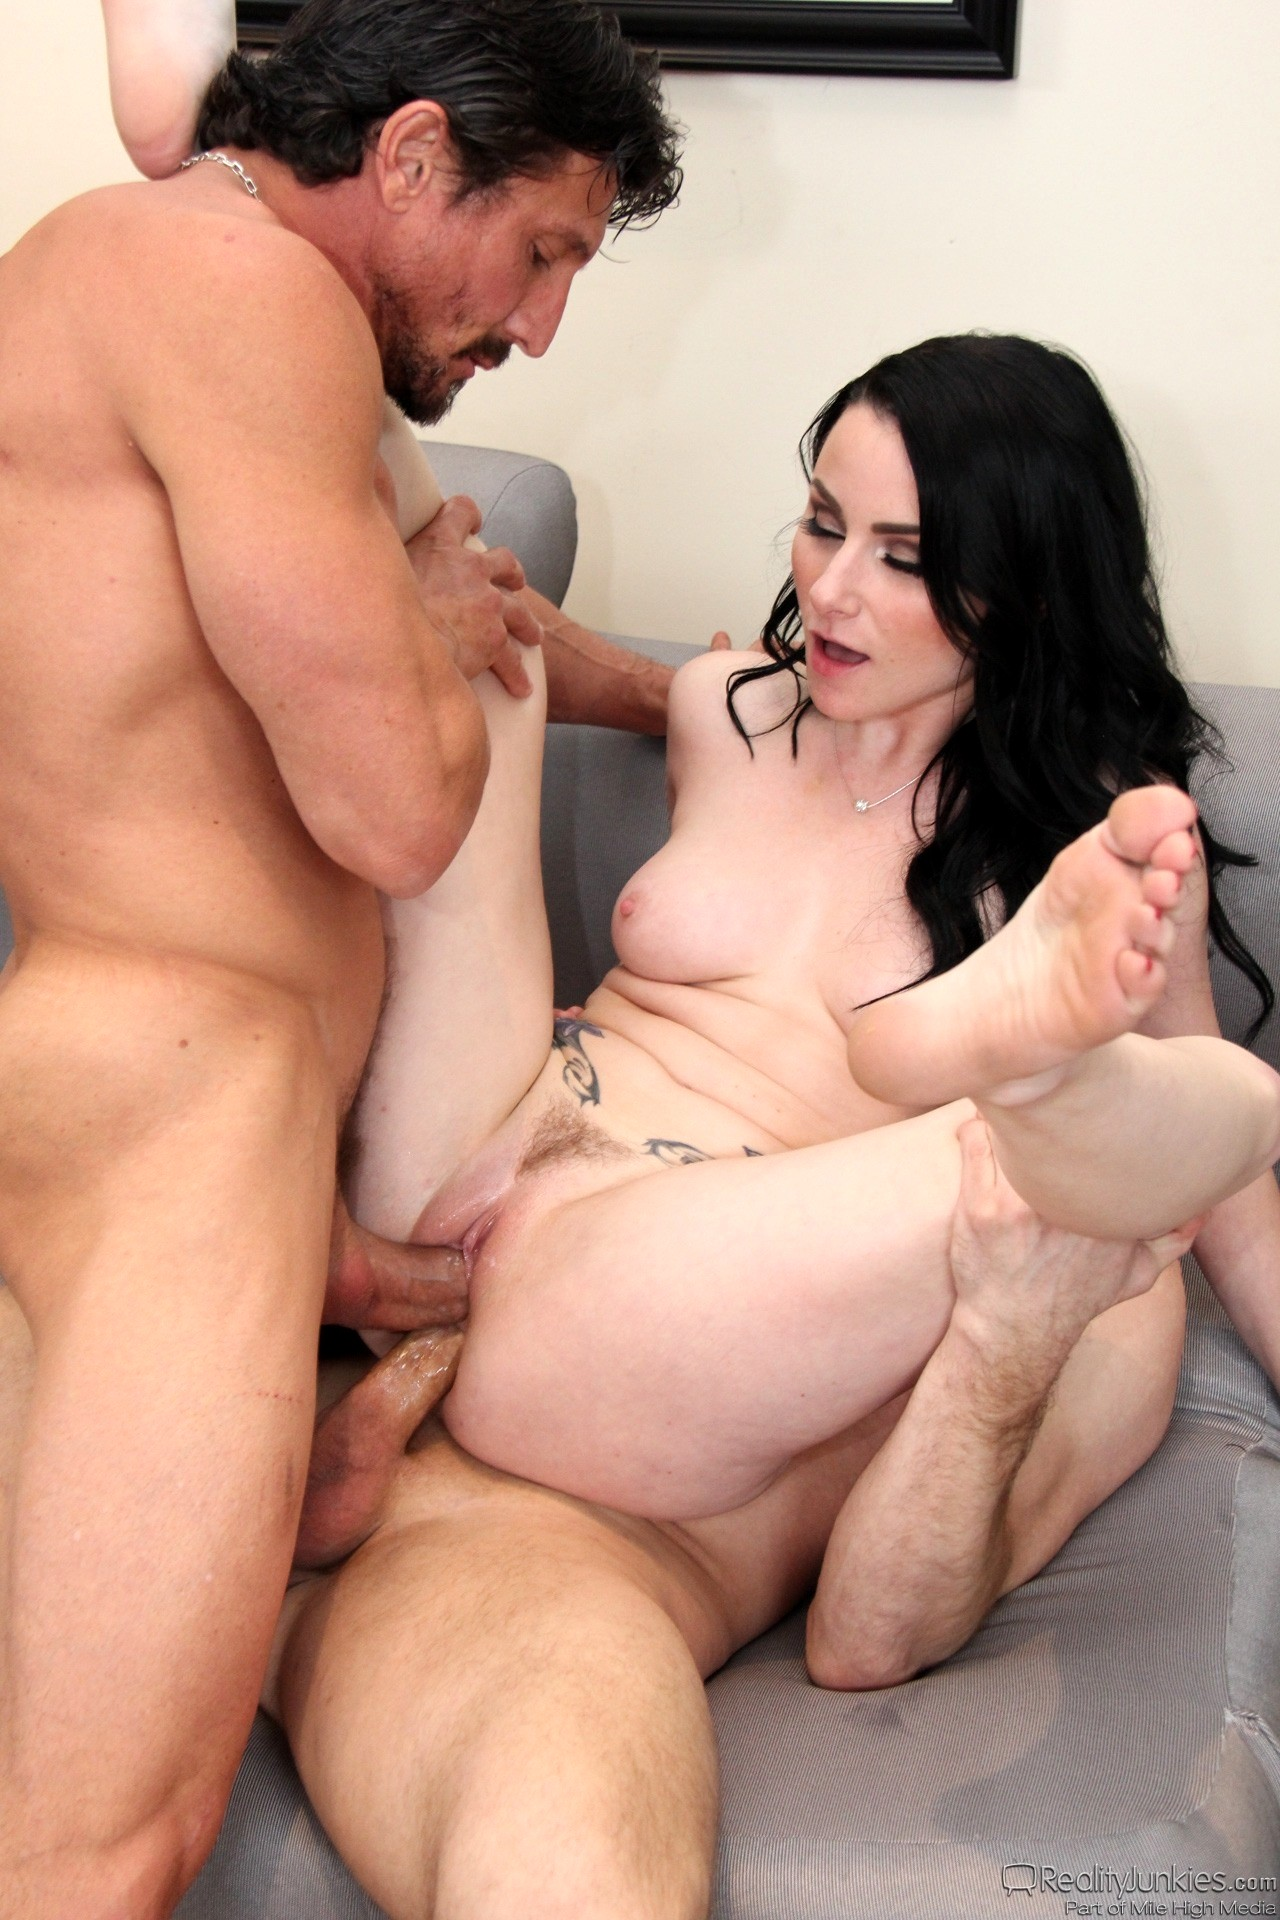 Babe Today Reality Junkies Veruca James Gorgeous Double -1377